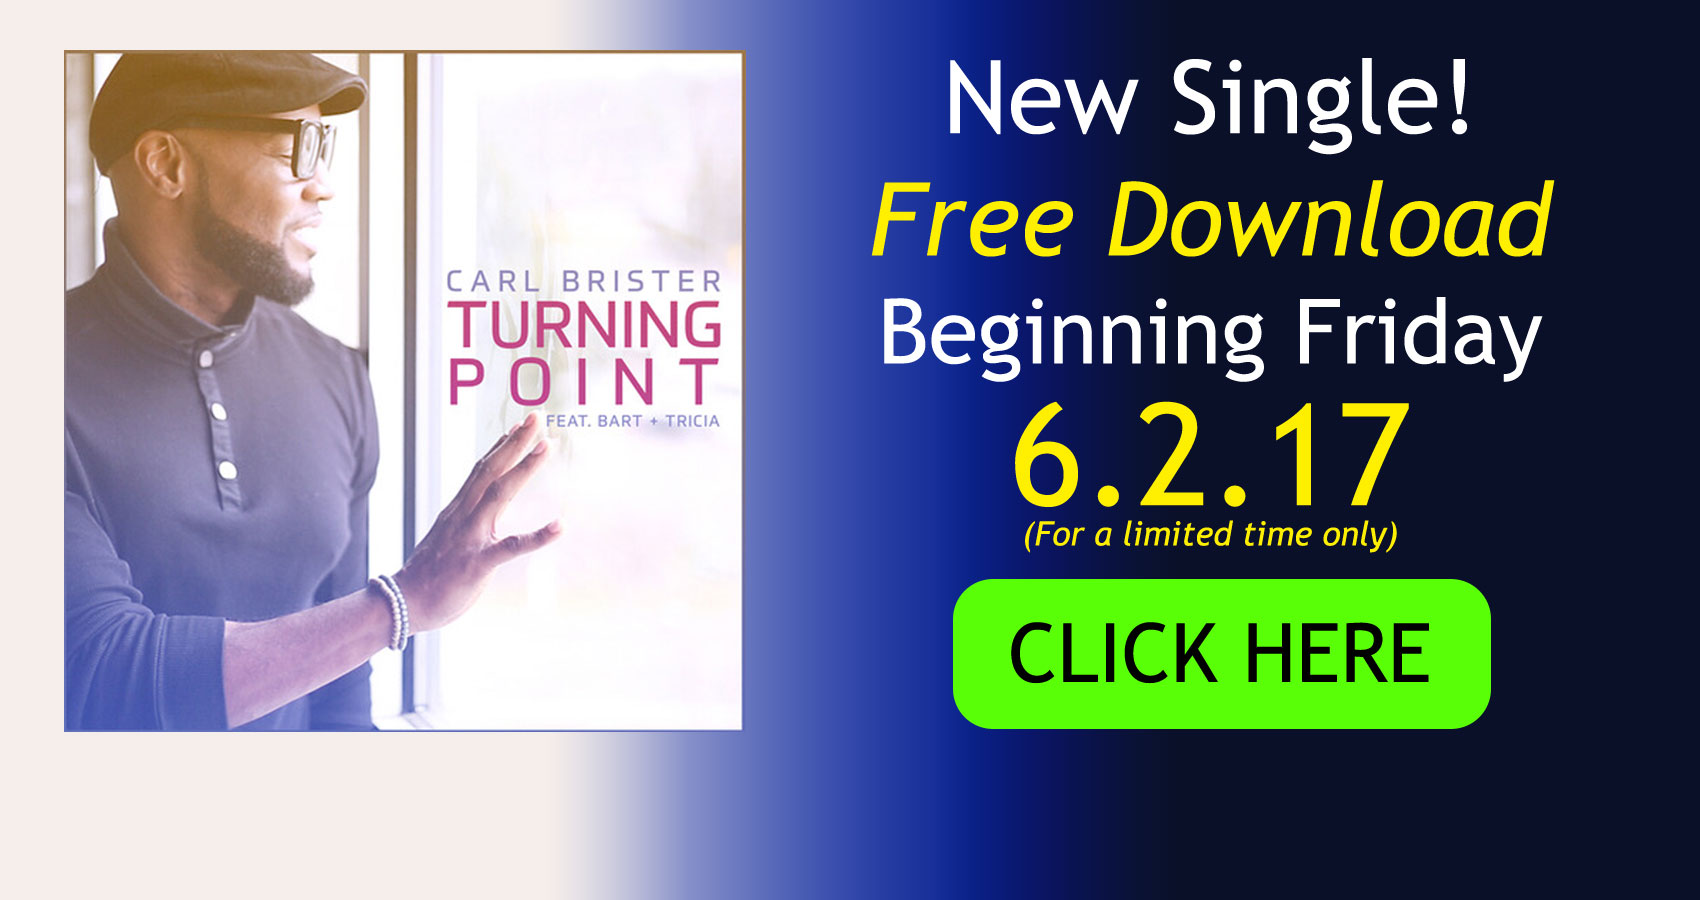 Carl's new single TURNING POINT. Free download beginning Friday, June 2nd